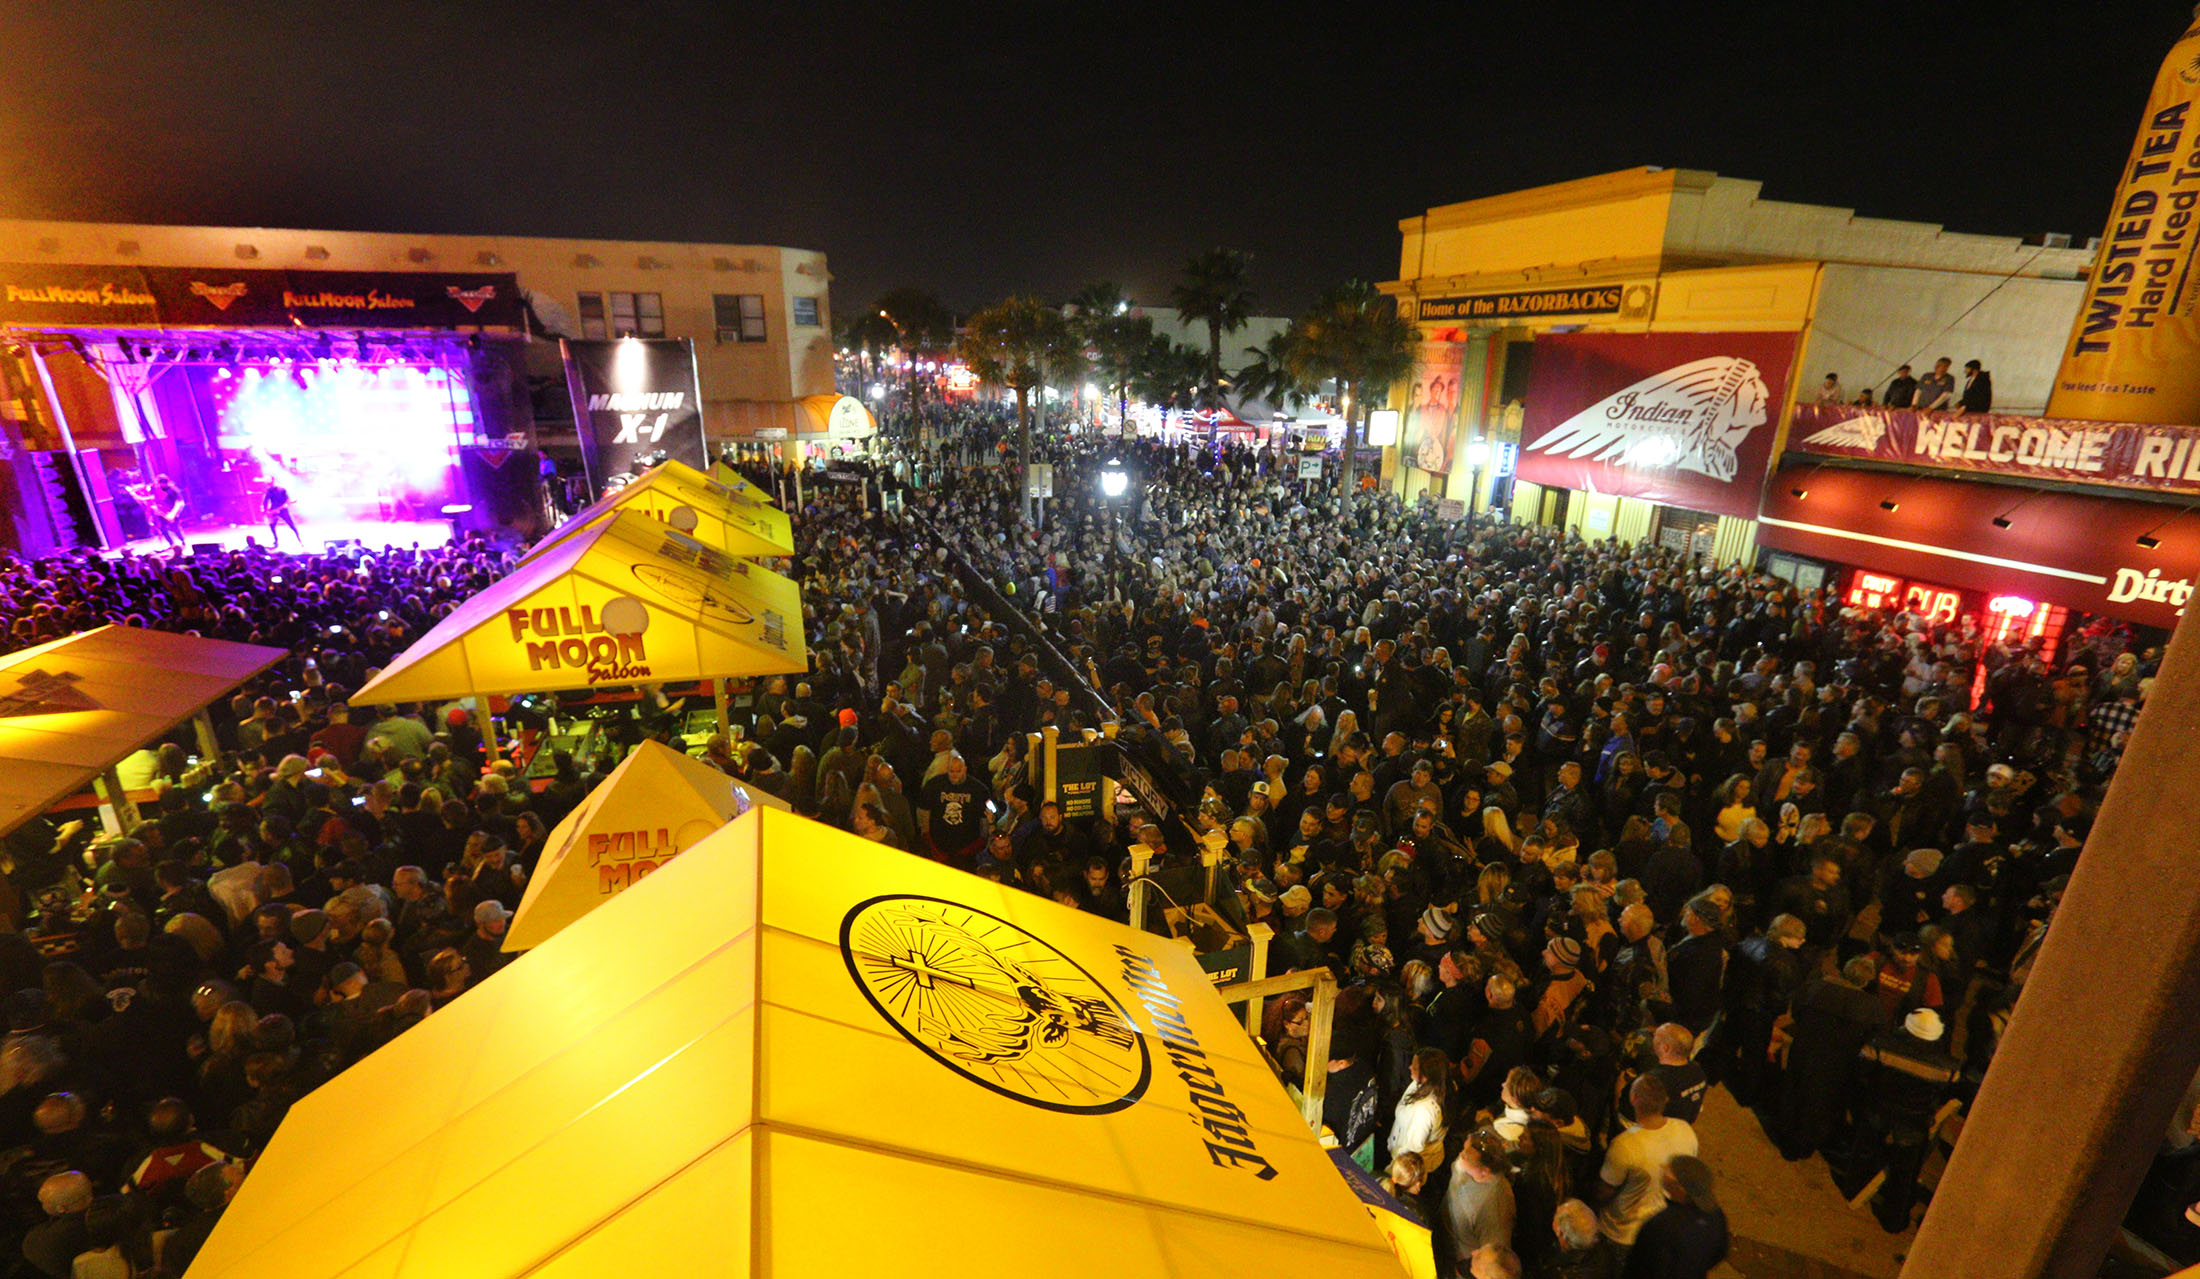 News-Journal/JIM TILLER   Lead singer Sully Erna from the band Godsmack belts out a song at the Full Moon Saloon lot Saturday night where the crowd grew so large that  Main Street in Daytona Beach had to be closed durning the Bike Week 2015 concert.